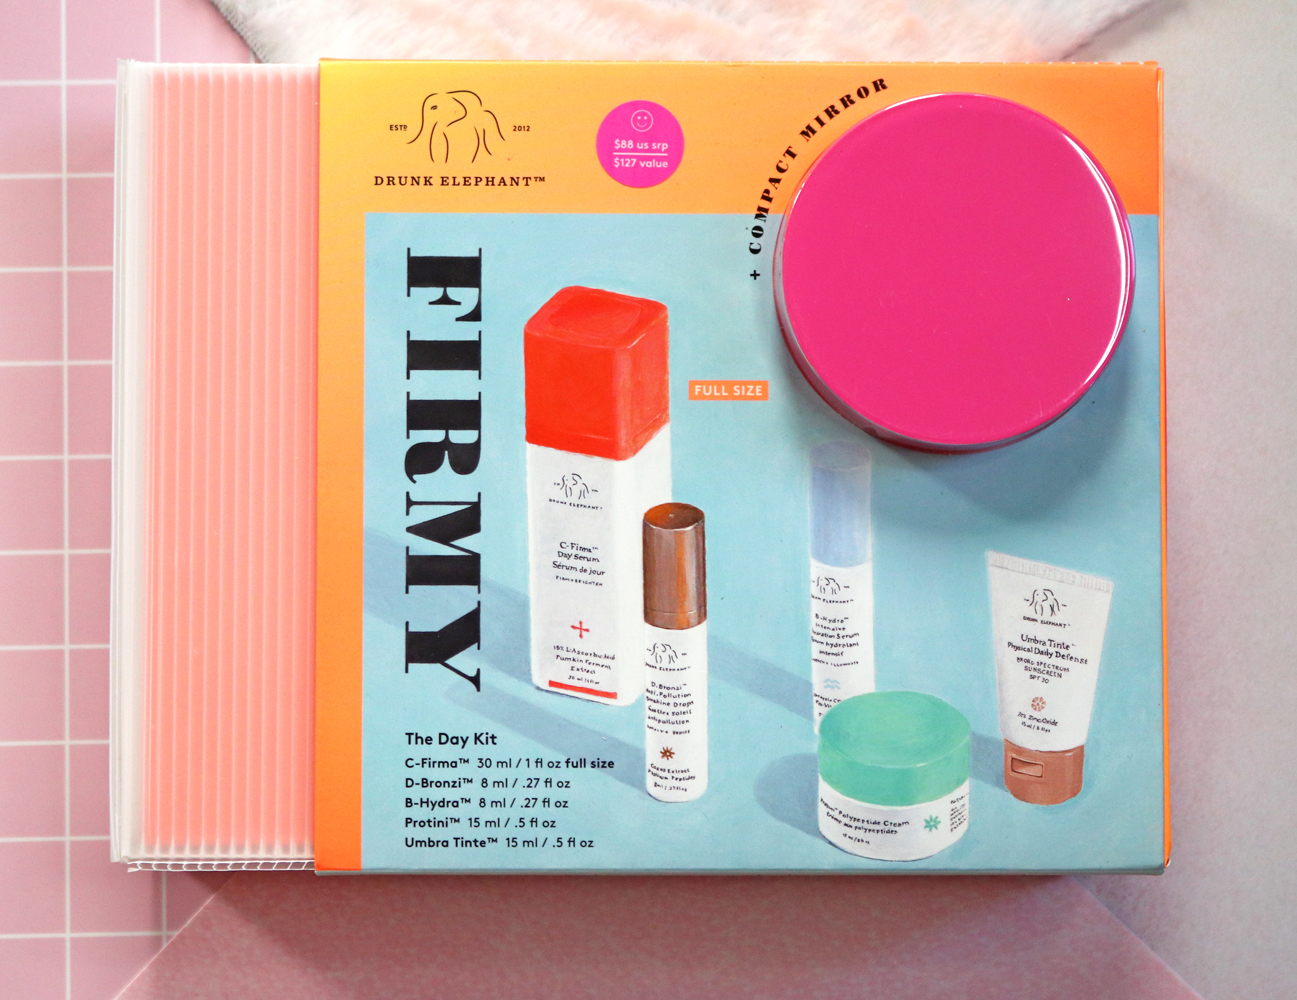 Drunk Elephant Firmy the Day Kit - Holiday Gift Set 2020